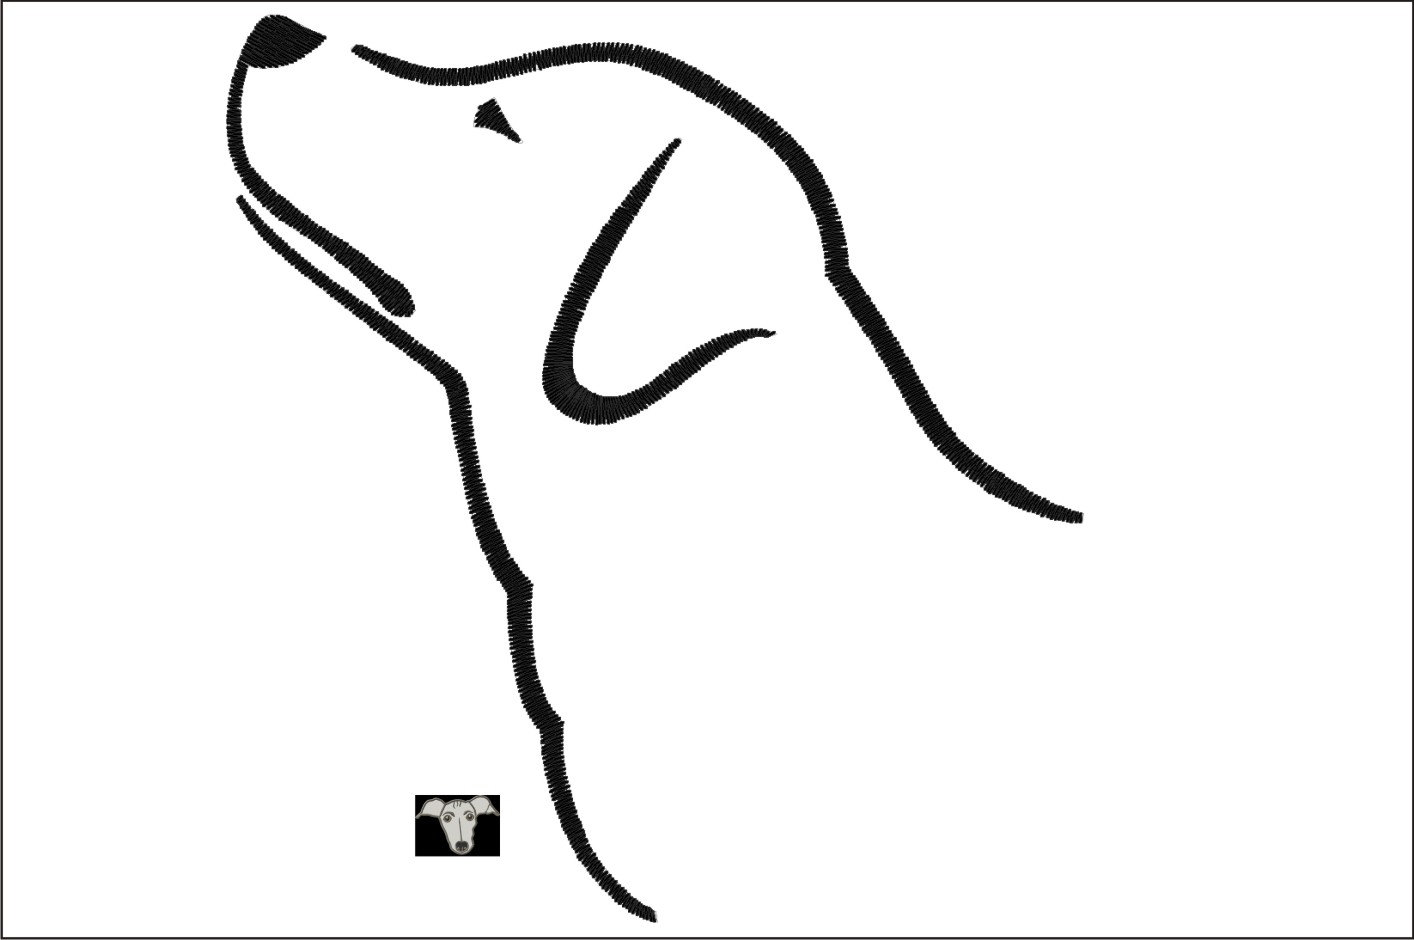 Dog Outline Drawing At Getdrawings